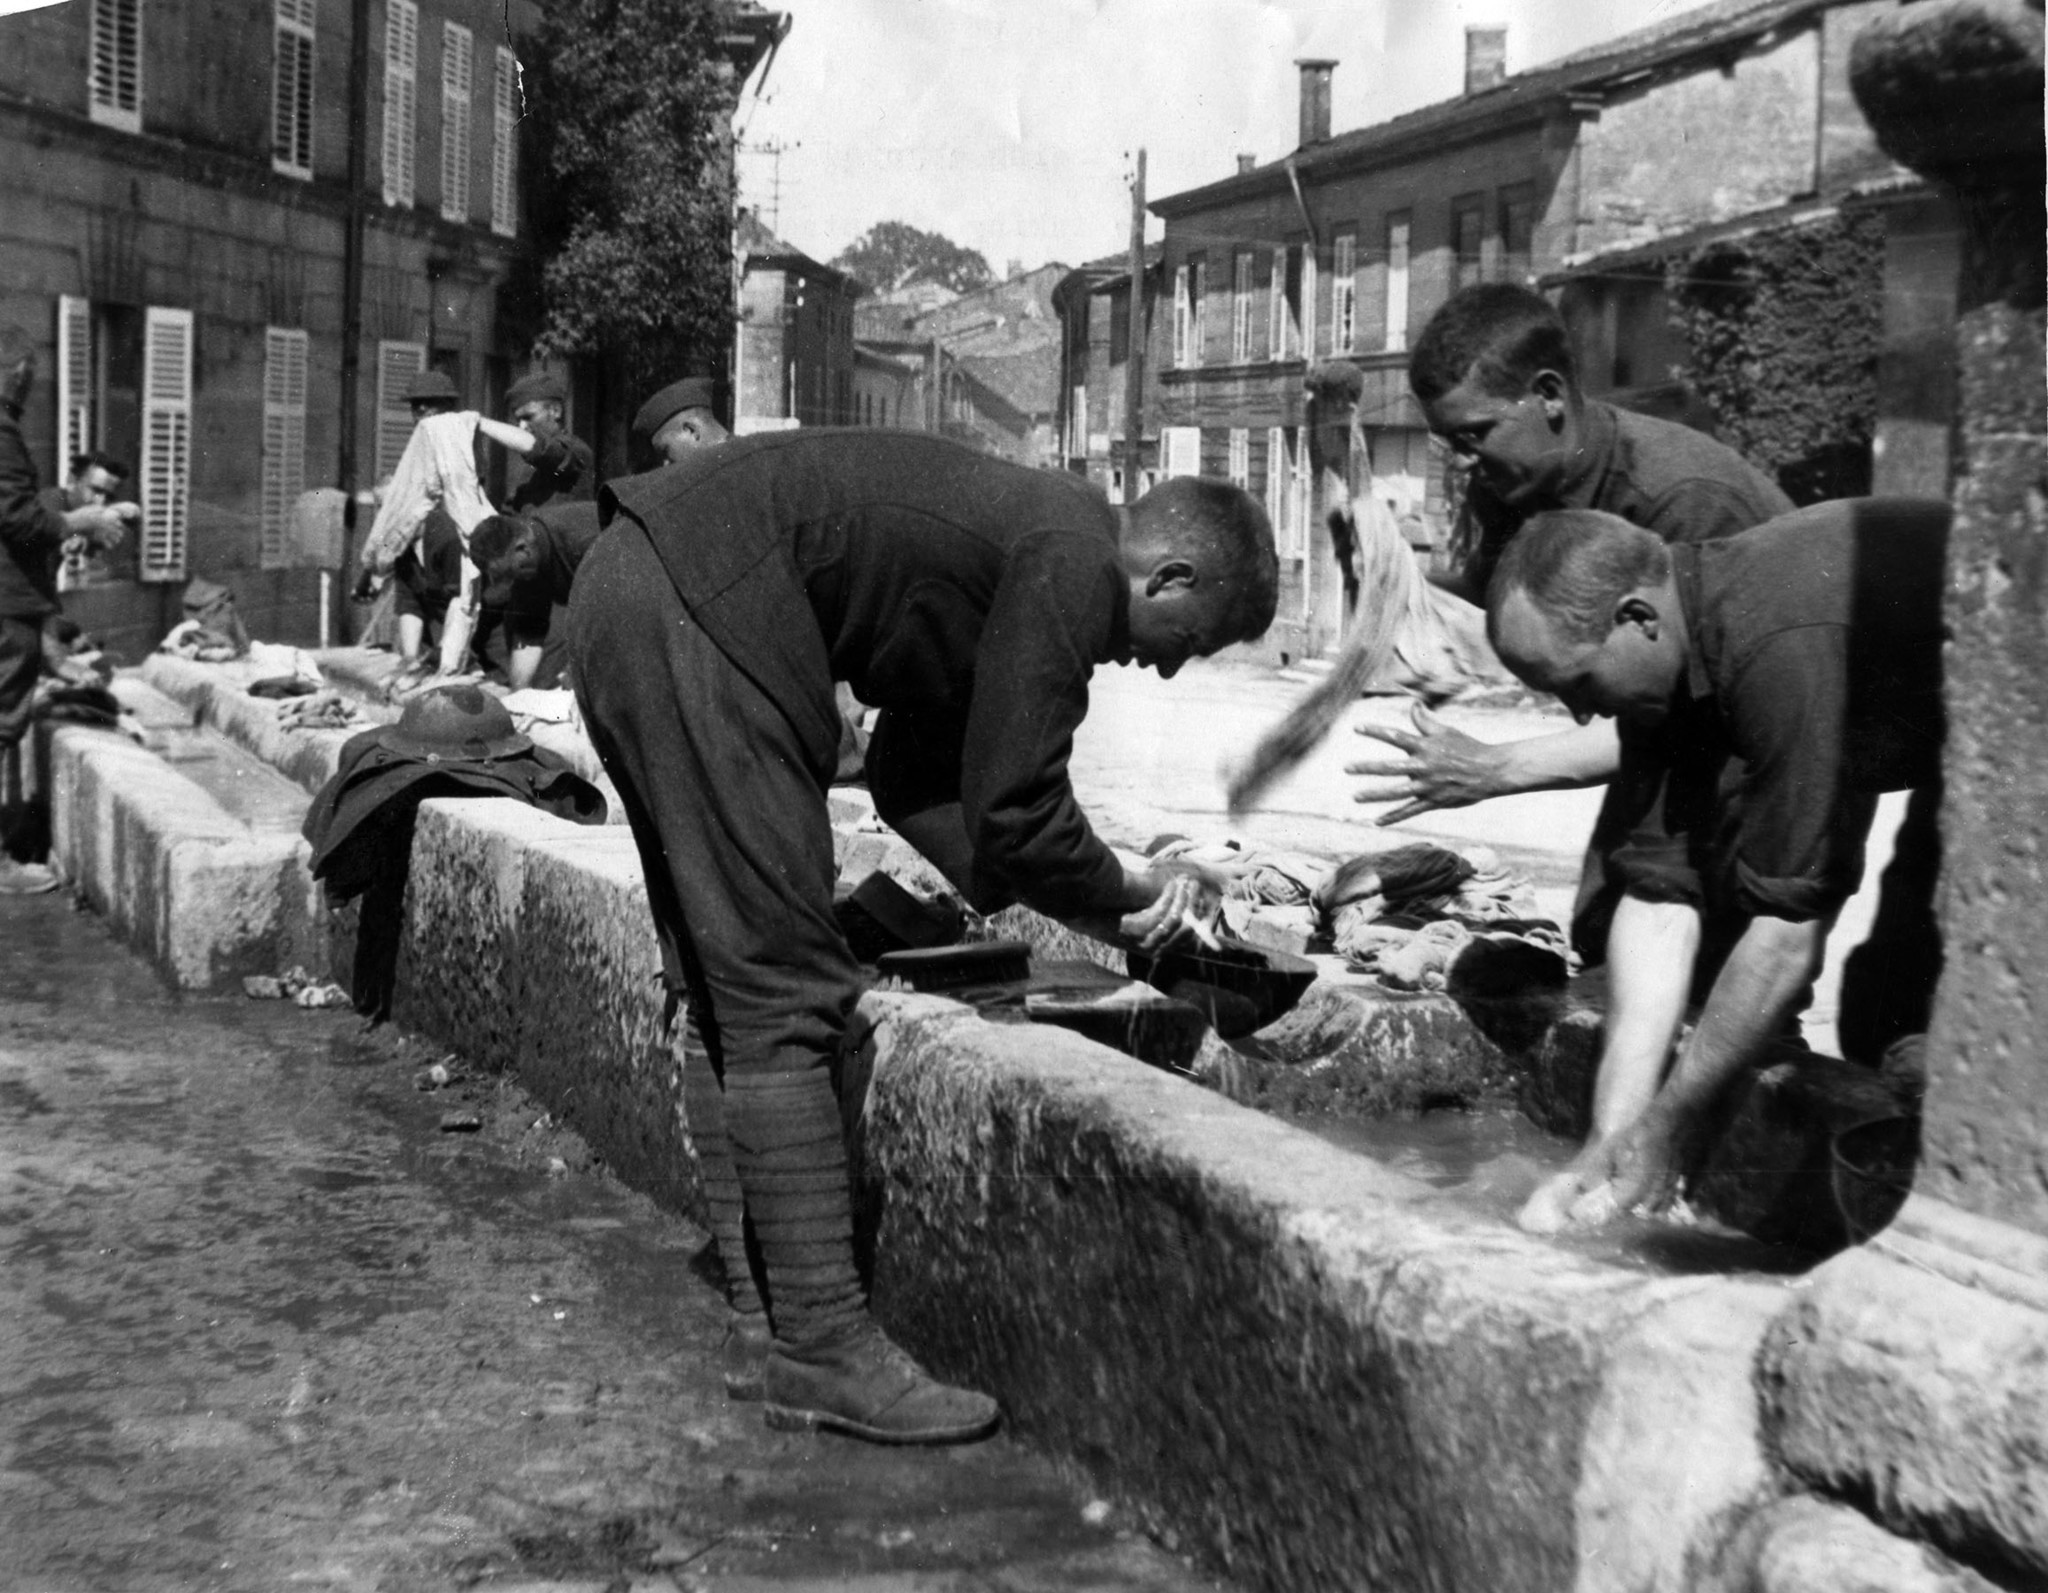 1918: Members of the 91st Infrantry Division take advantage of community washing troughs in village